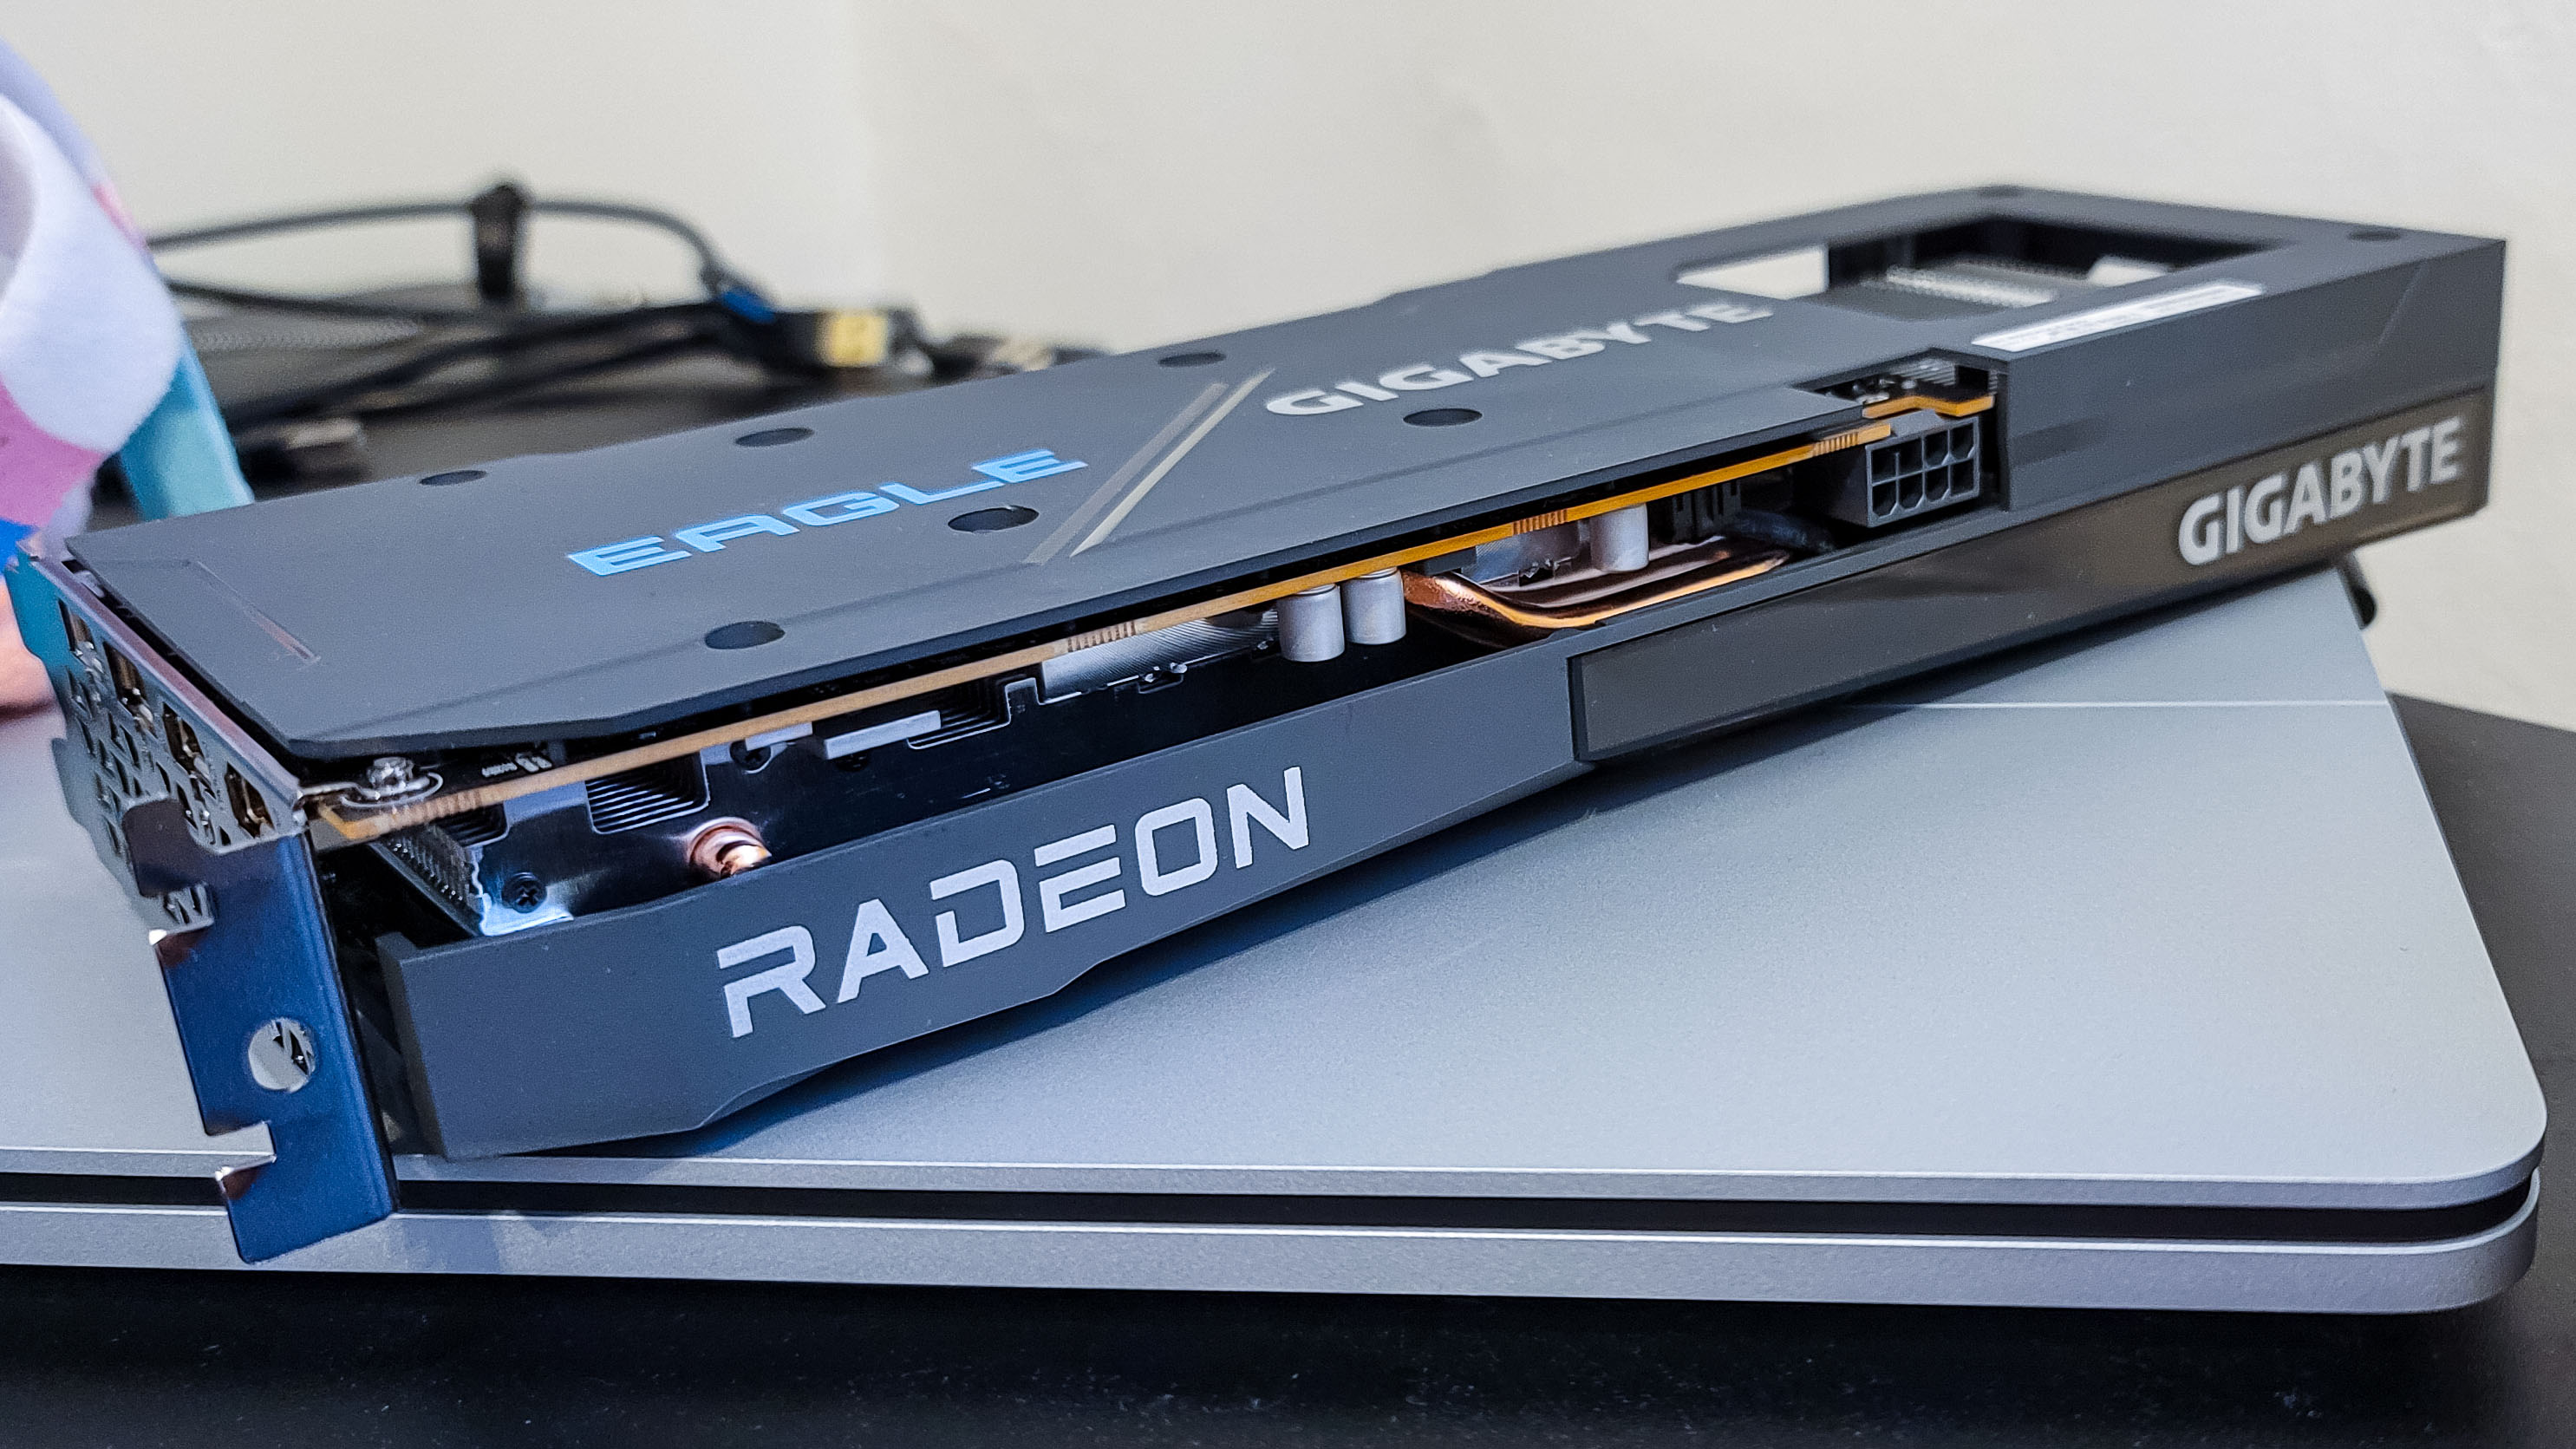 AMD Radeon RX 6600 on a laptop, showing its side design and power connector